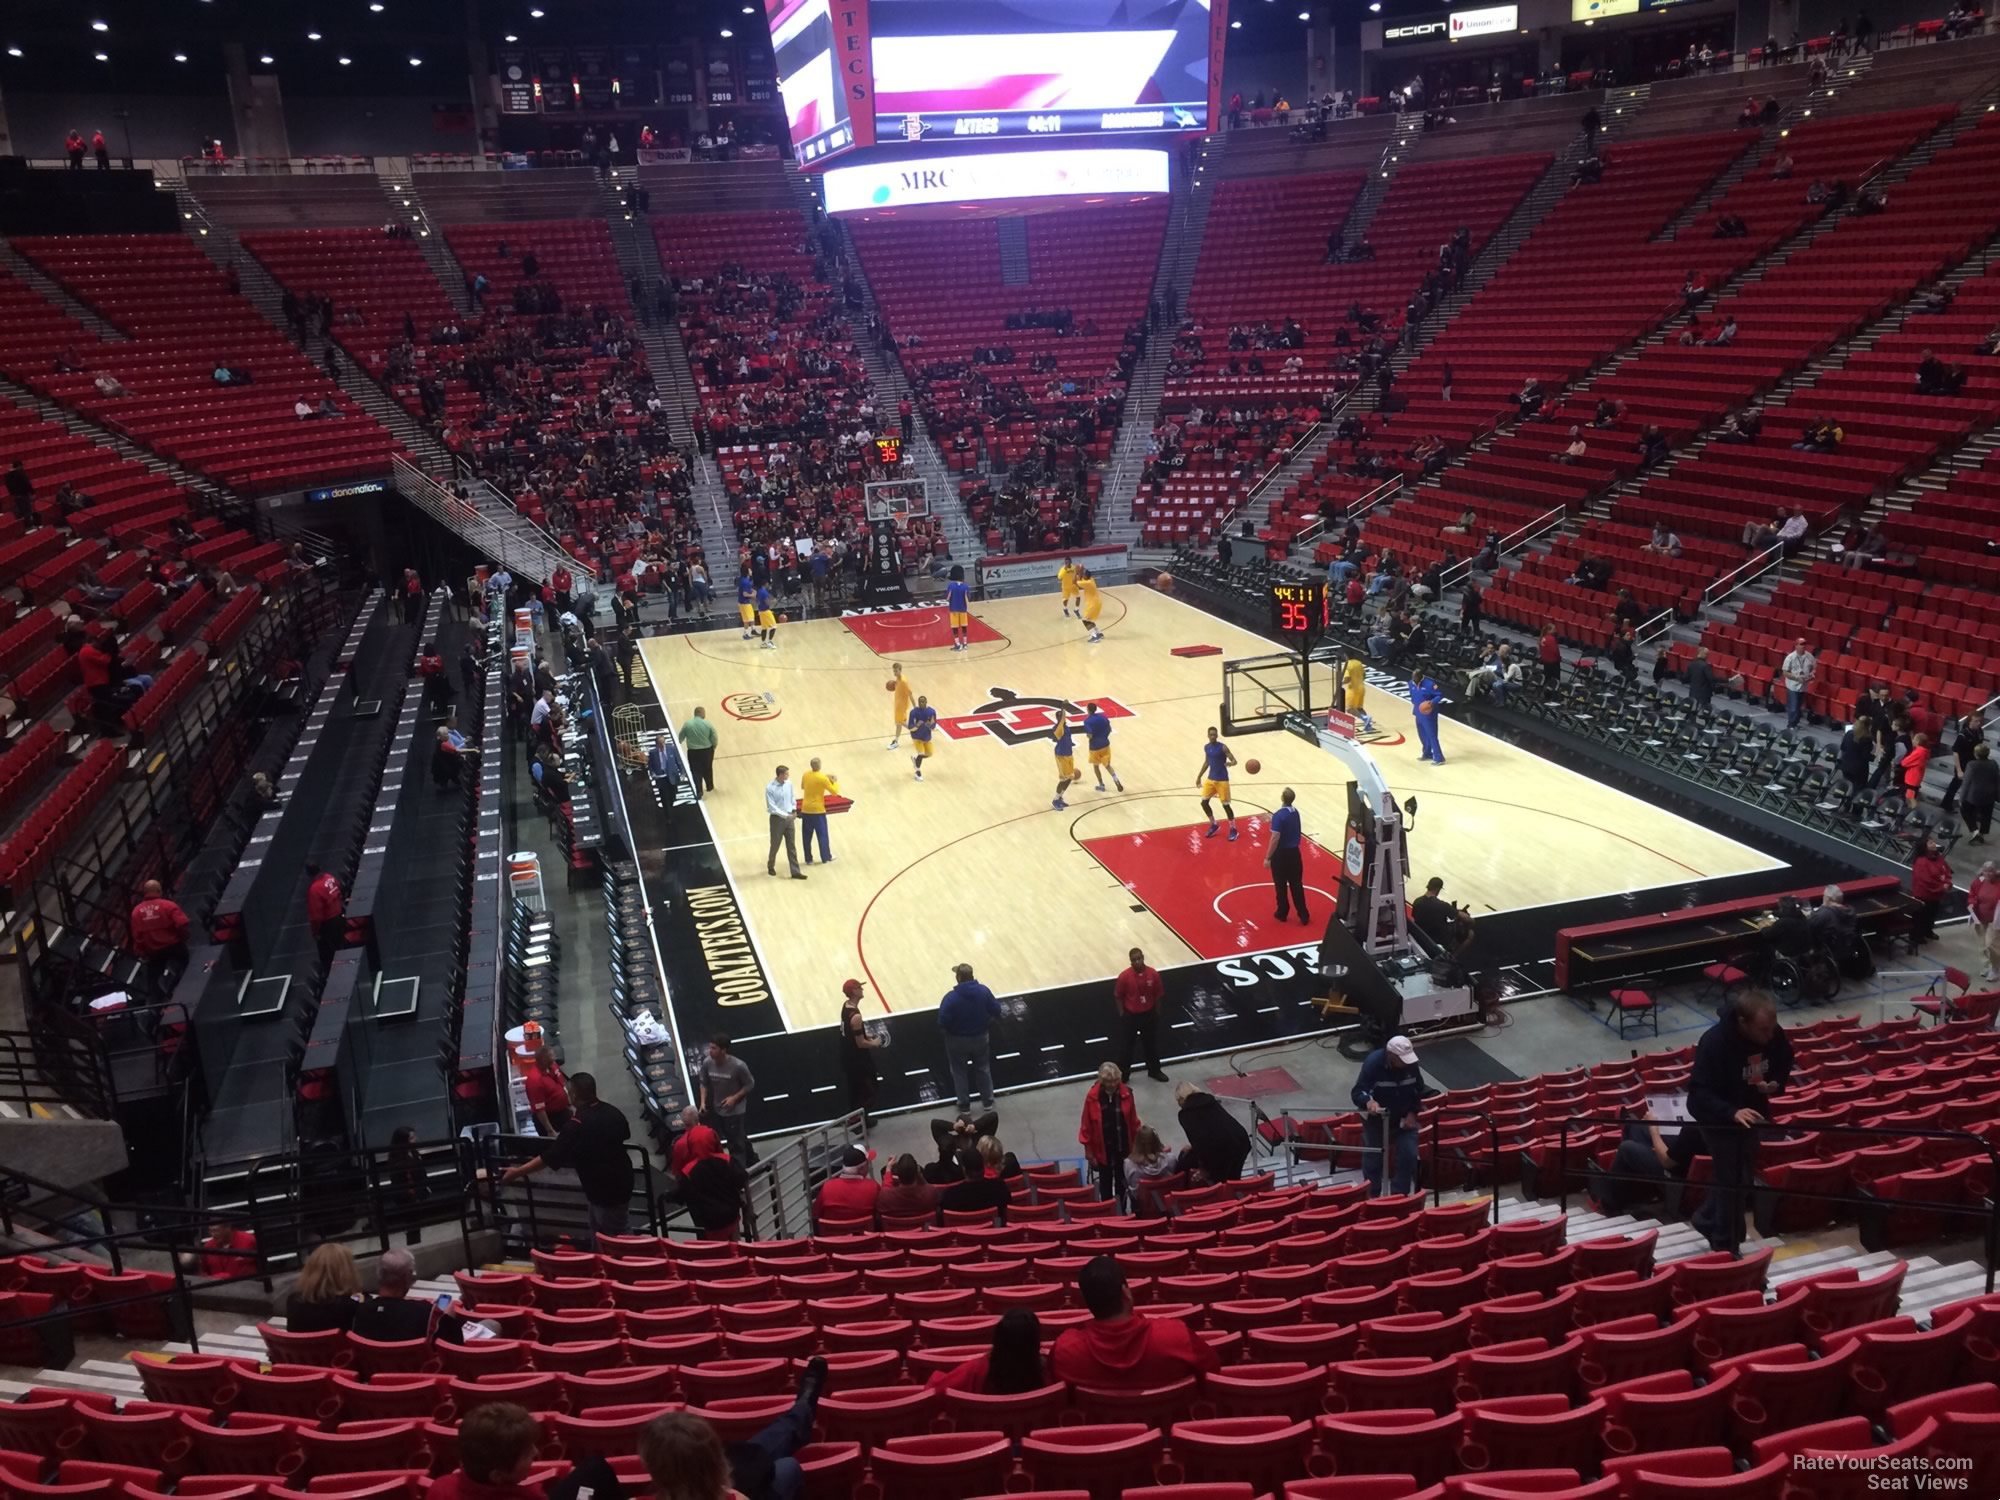 Viejas Arena Section V Rateyourseats Com